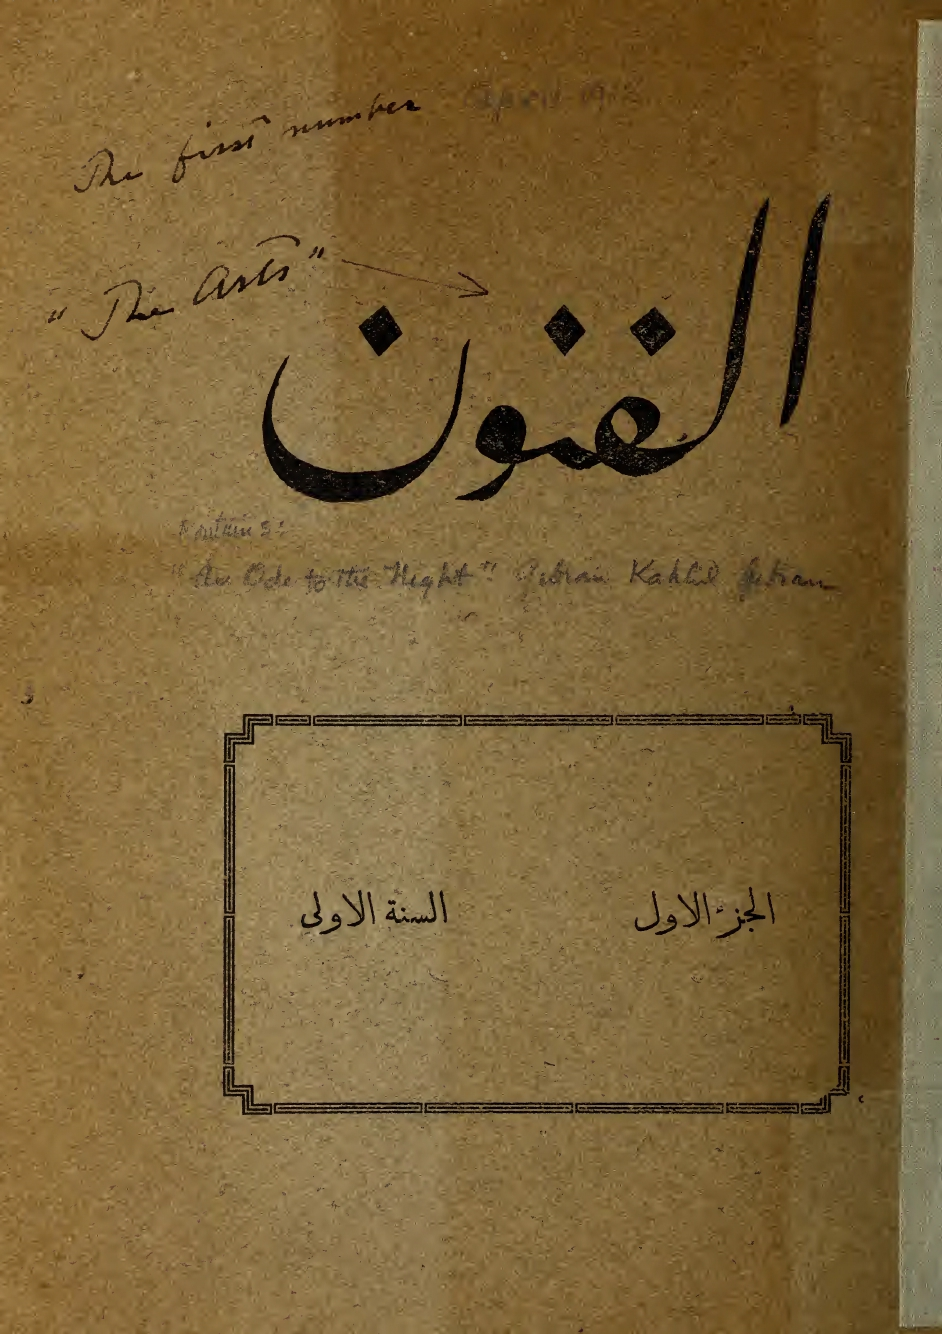 Ayyuha al-Layl [An Ode to the Night], al-Funun 1, no. 1 (April 1913), pp. 1-4